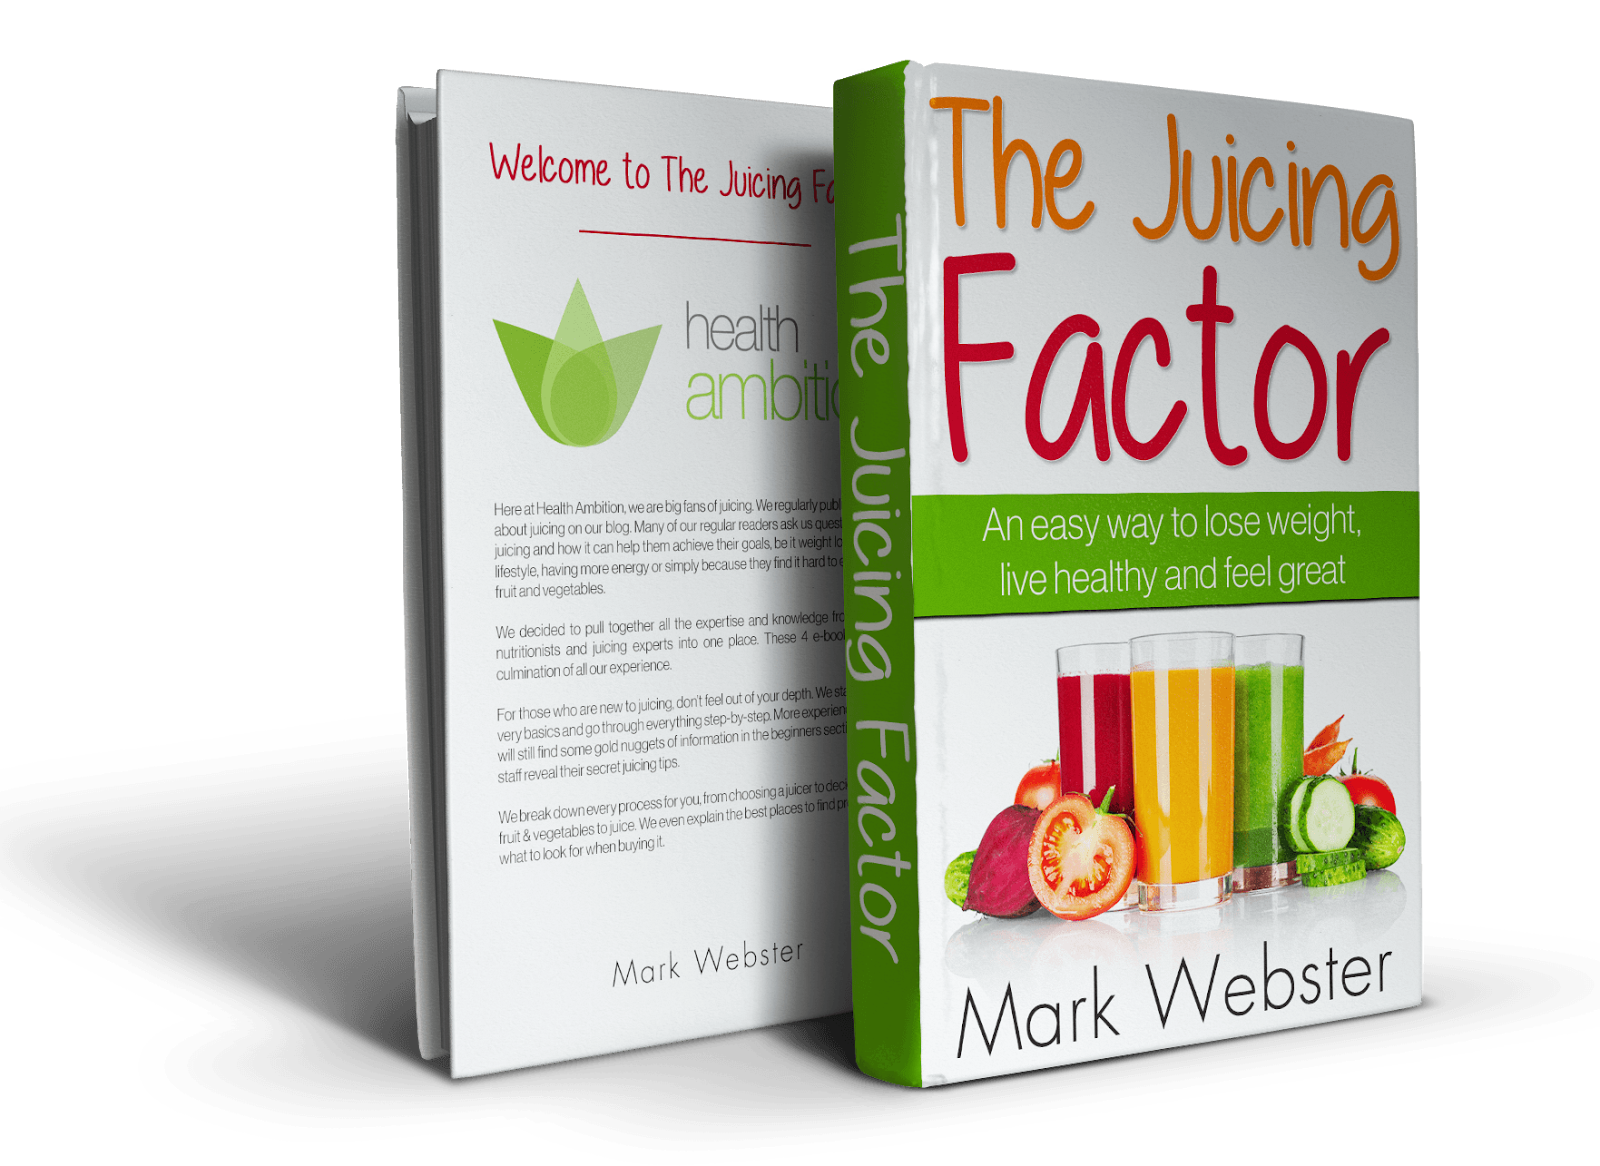 The Juicing Factor - Healthy Lifestyle and Weight Loss